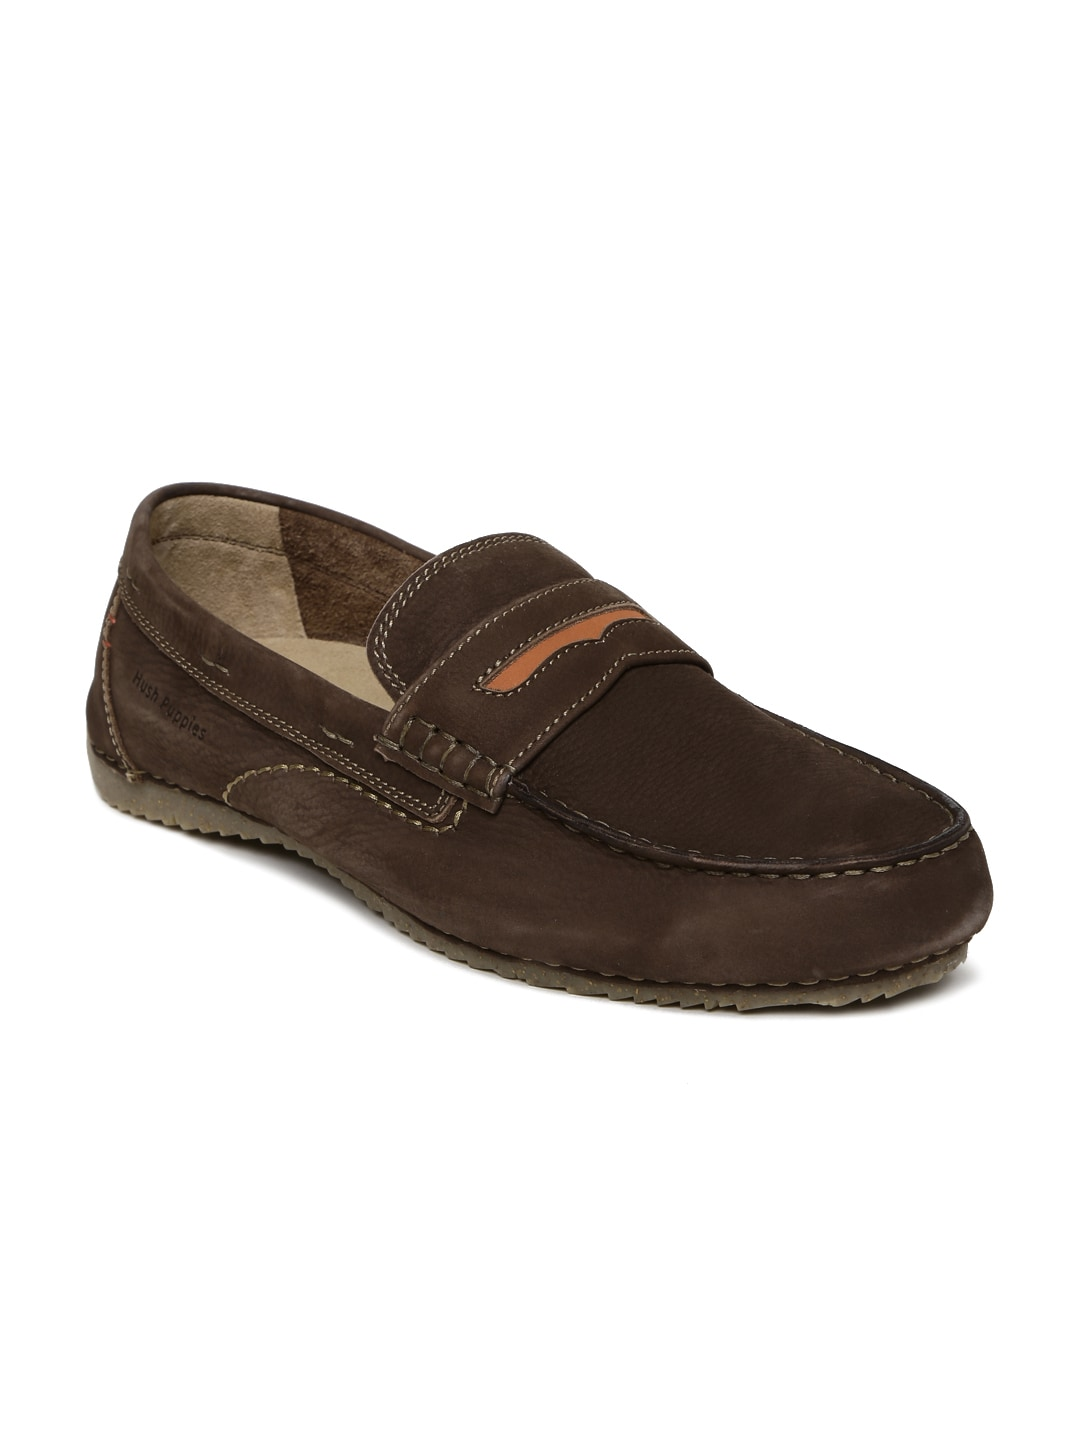 Hush Puppies Men Brown Loafers image